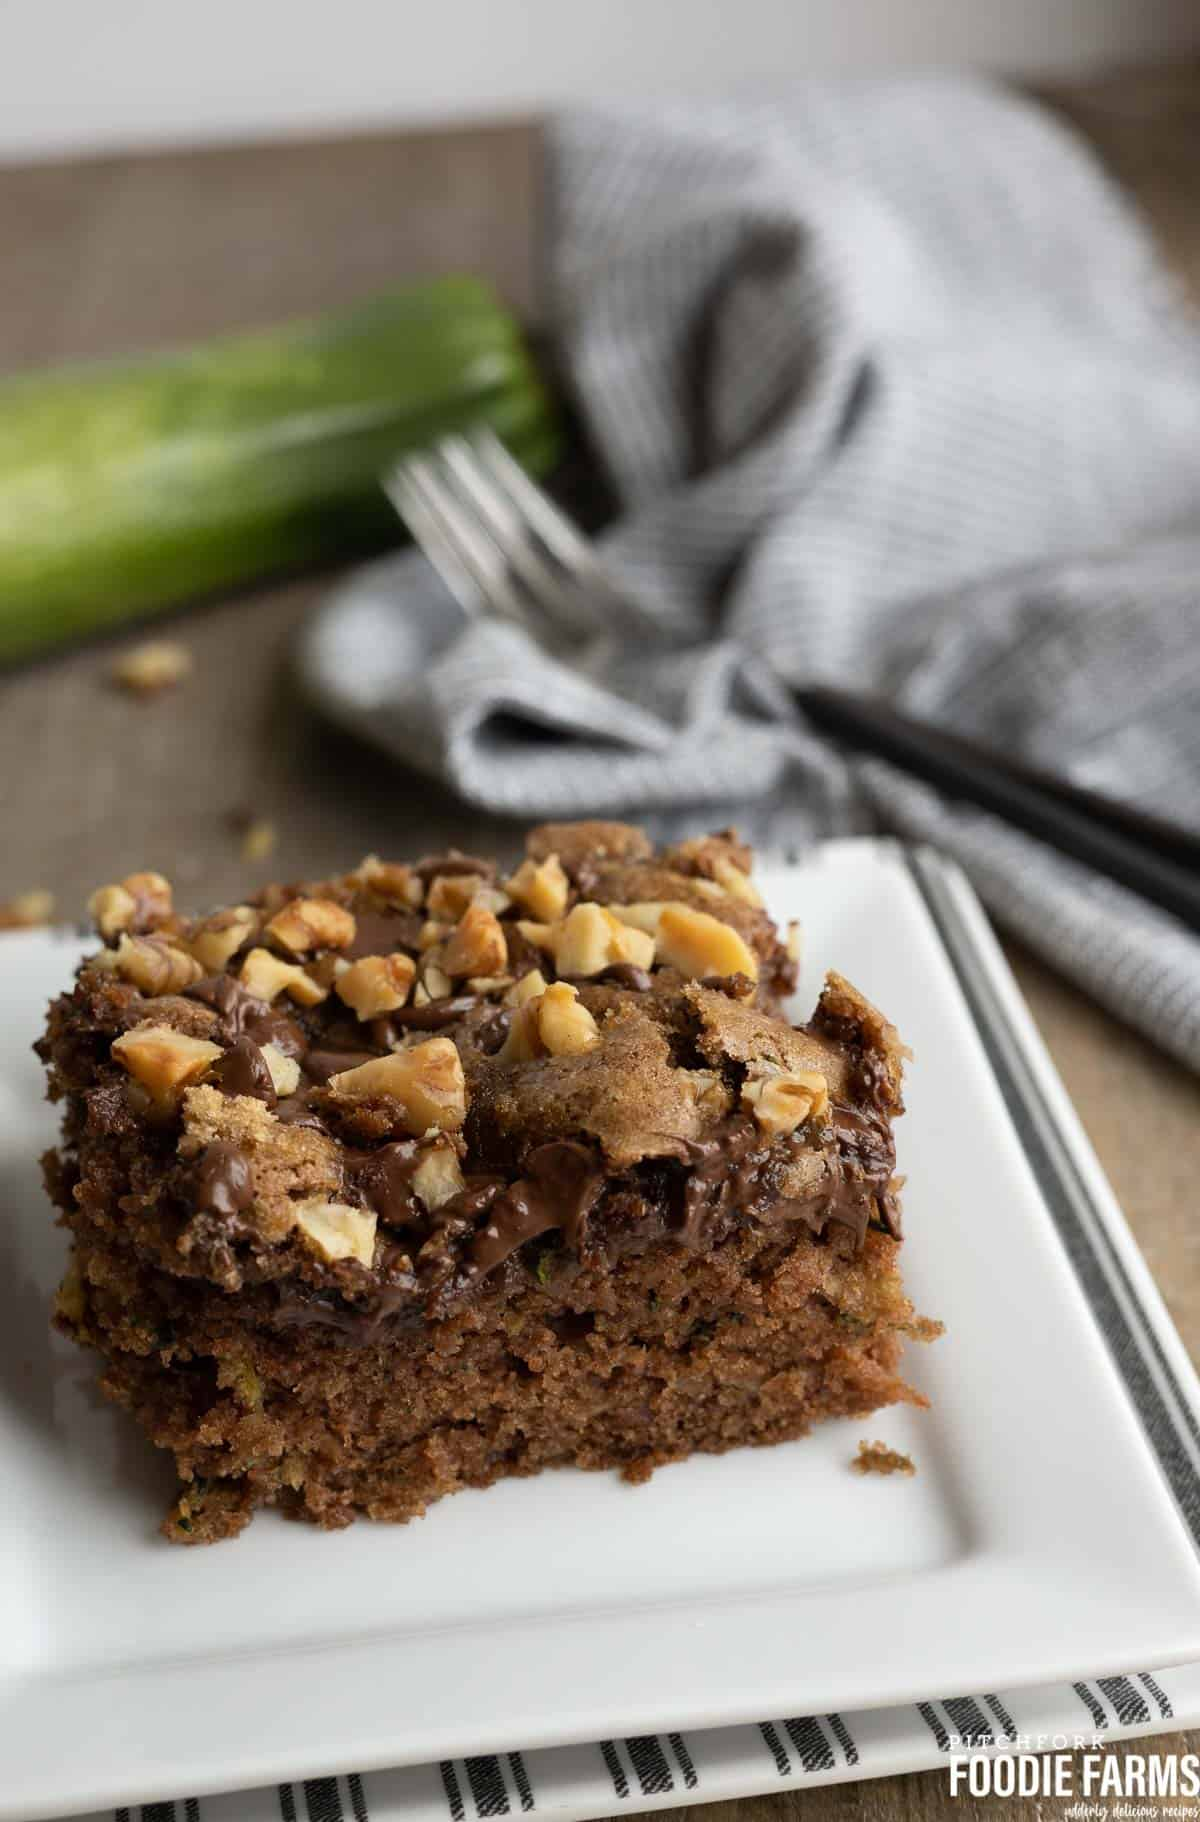 Zucchini Cake with chocolate chip and walnuts on top to make streusel.